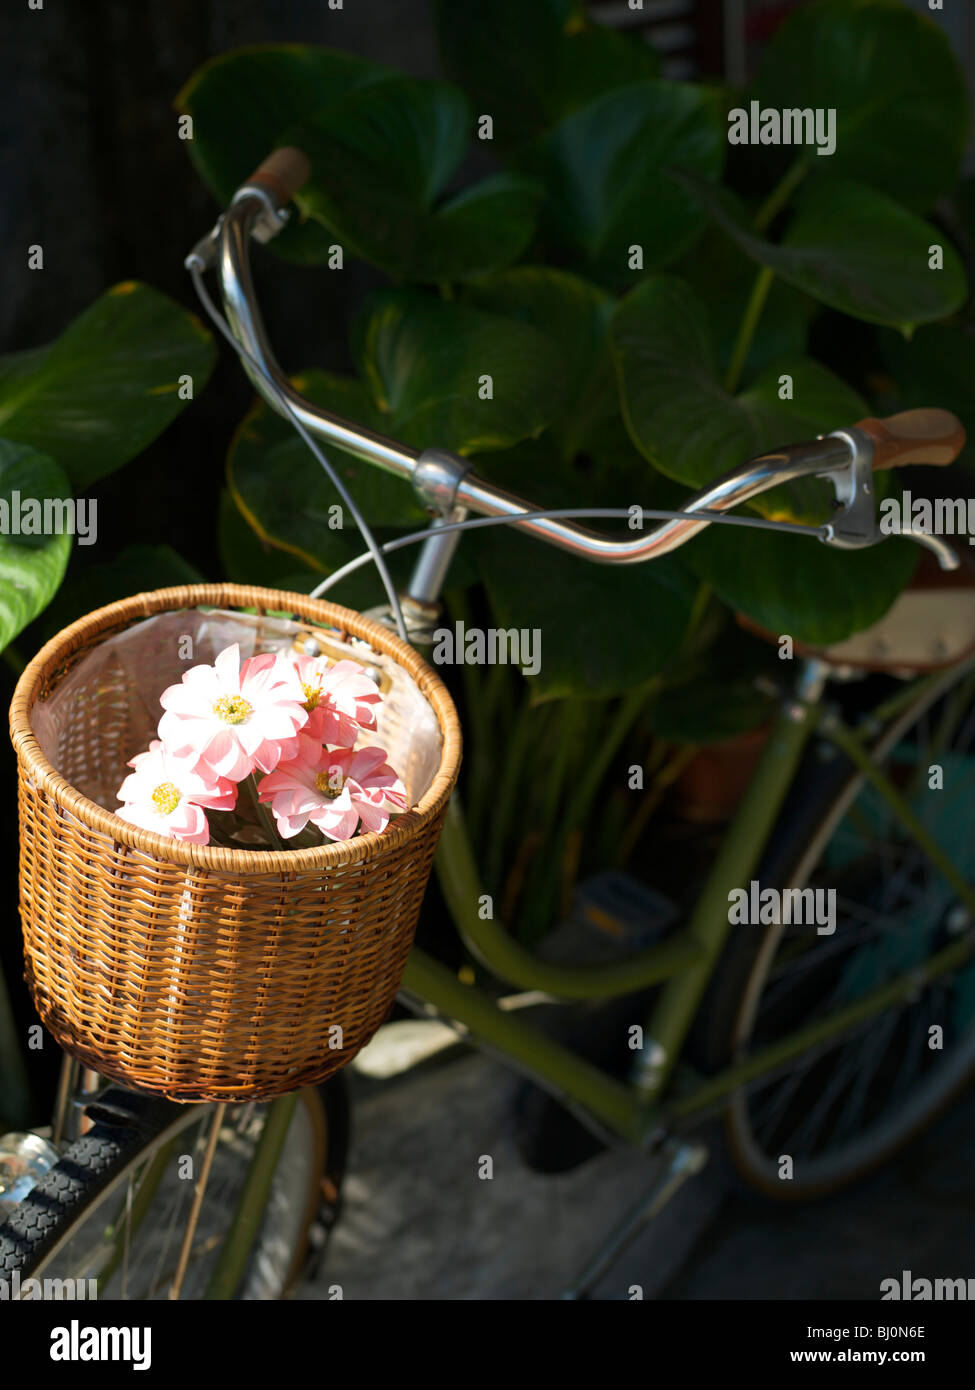 Wicker bicycle basket with fake pink flowers inside.  - Stock Image